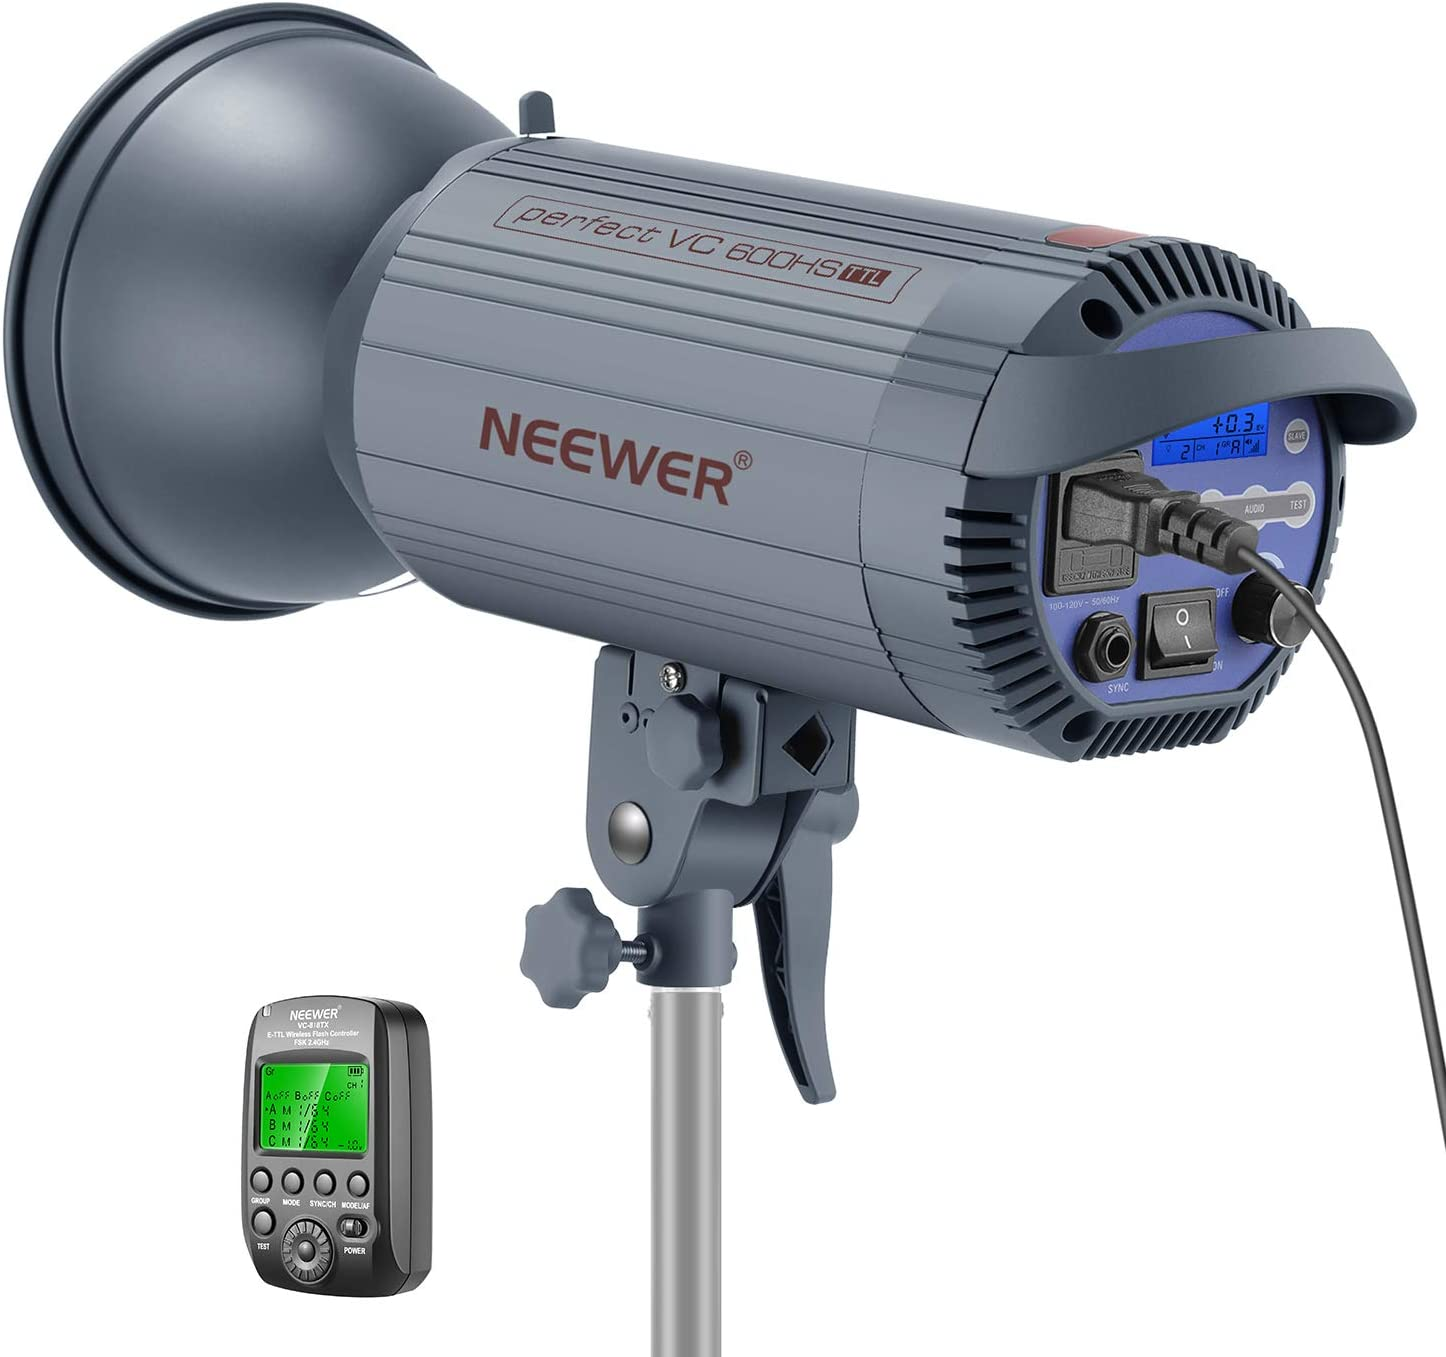 Neewer 600W TTL HSS 1/8000s GN86 Studio Strobe Flash Light Monolight with 2.4G Wireless Trigger for Canon DSLR Cameras,Recycle 0.6 Sec, Bowens Mount for Indoor Studio Portrait Photography(VC 600HS)